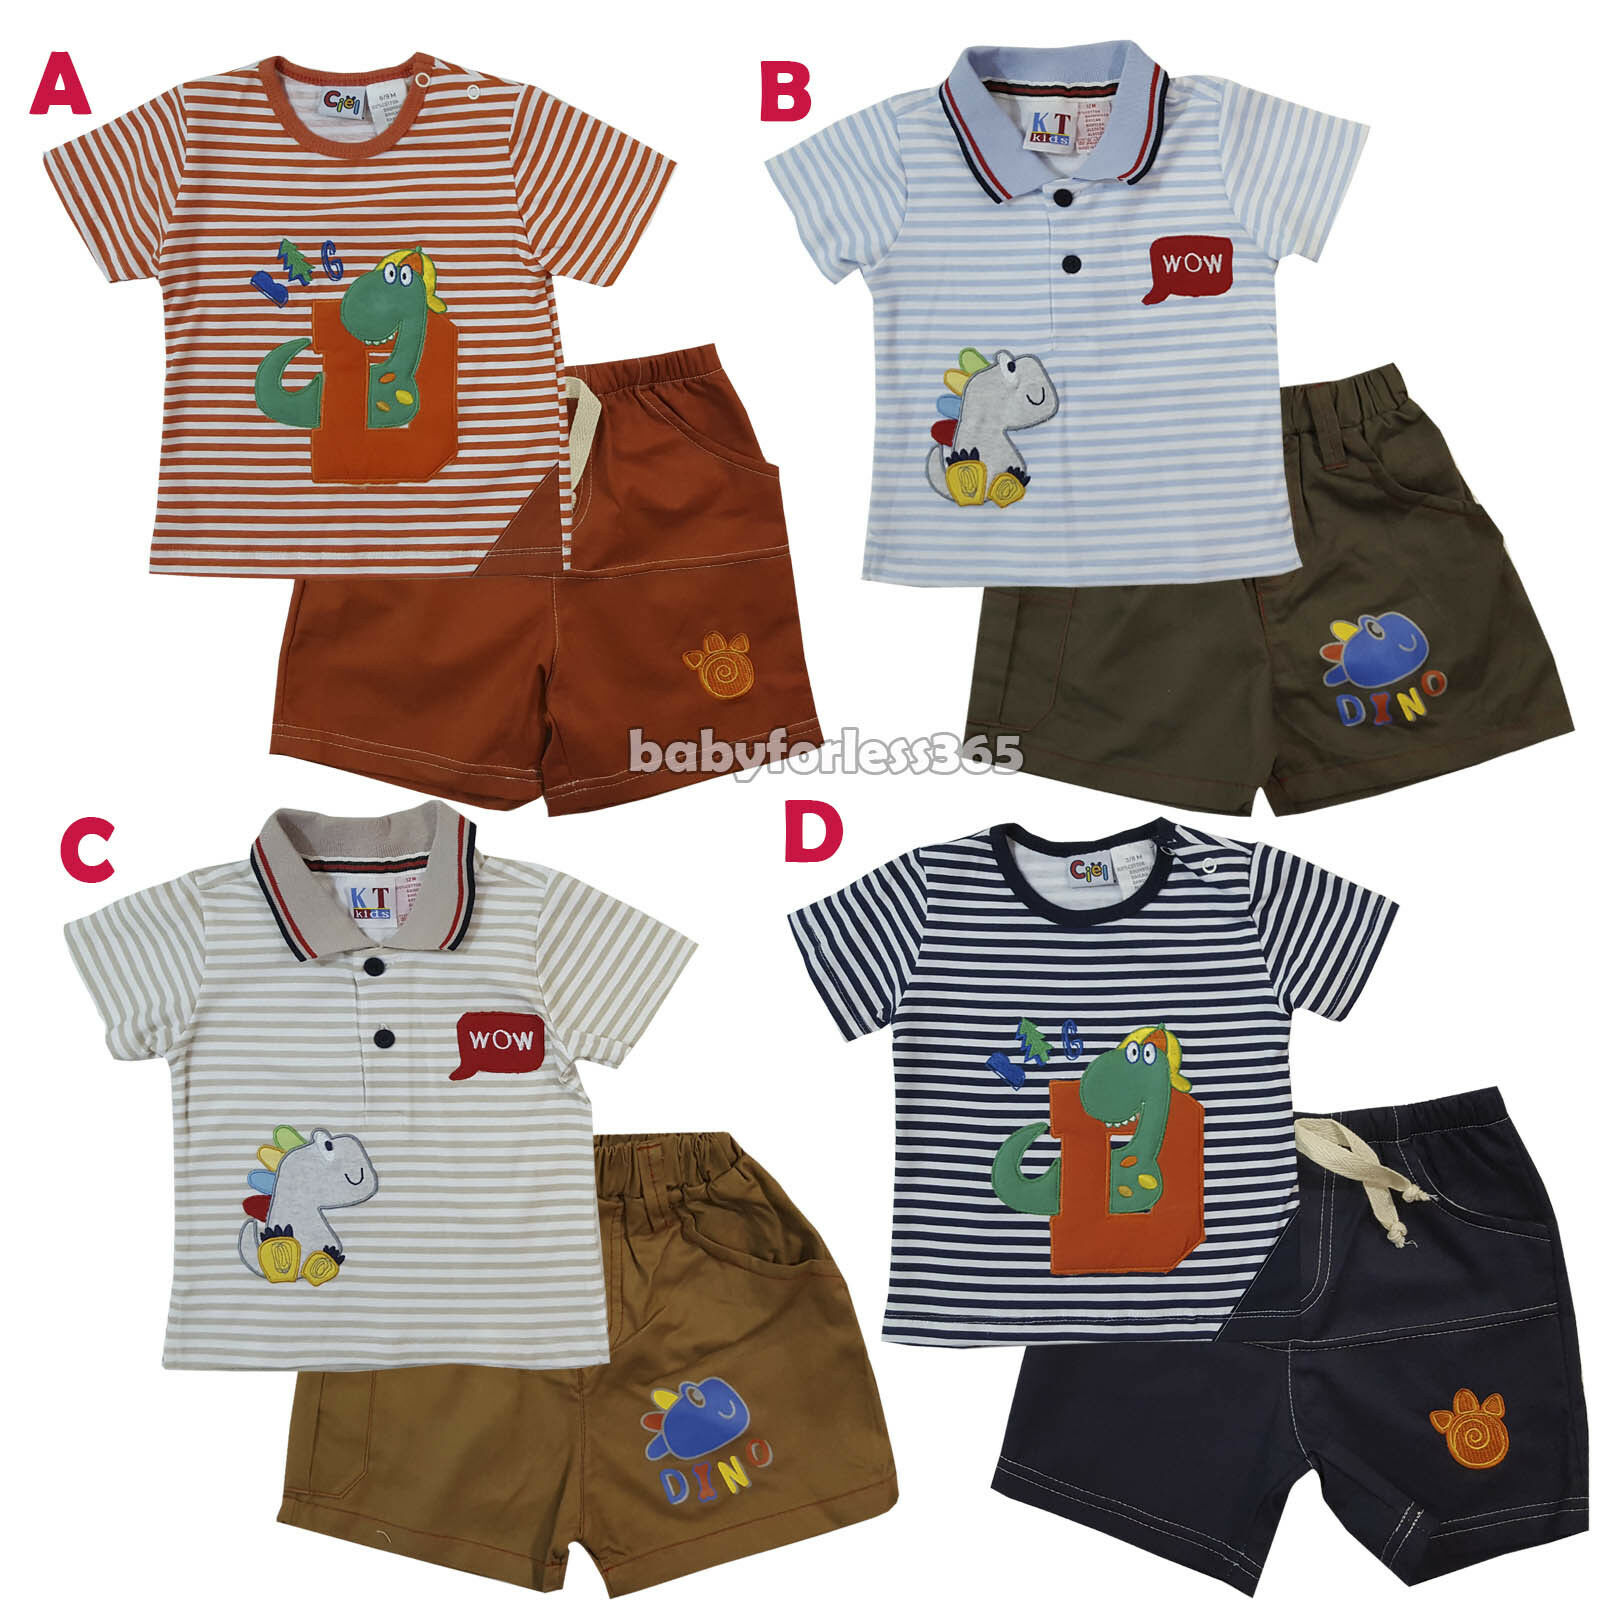 199d5765384b New Baby Boys 2 Pieces set Shirt Top and Pants Size 3 6 9 12 18 24 ...